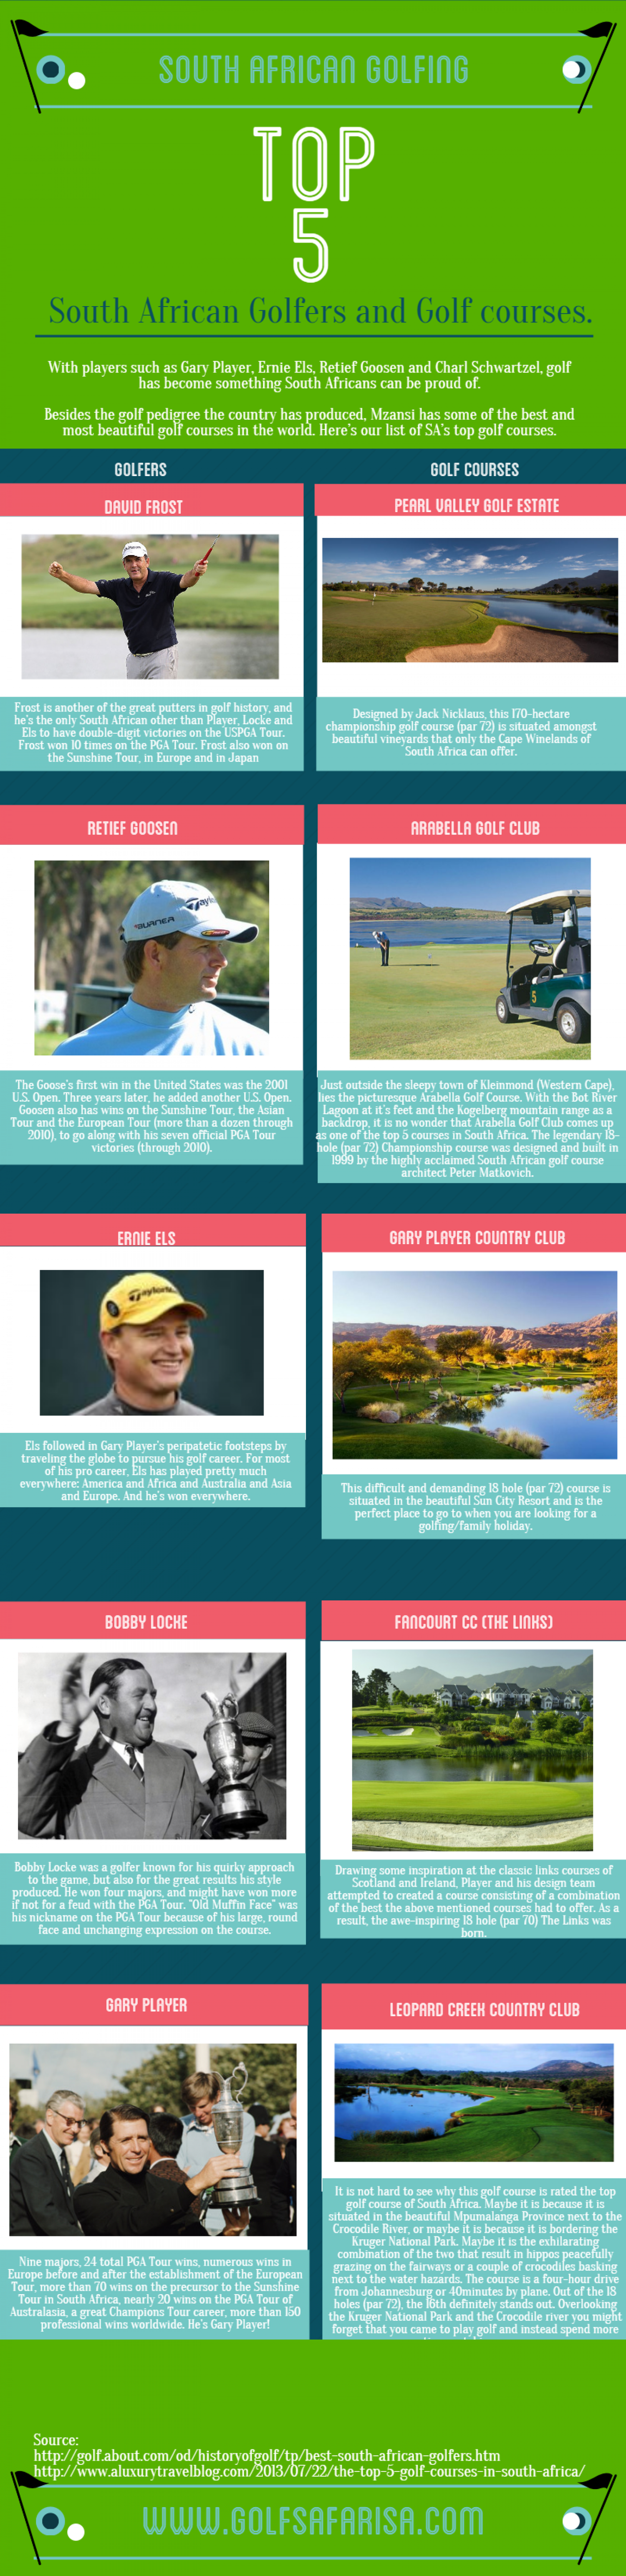 Top 5 SA Golfers and Golf Courses Infographic